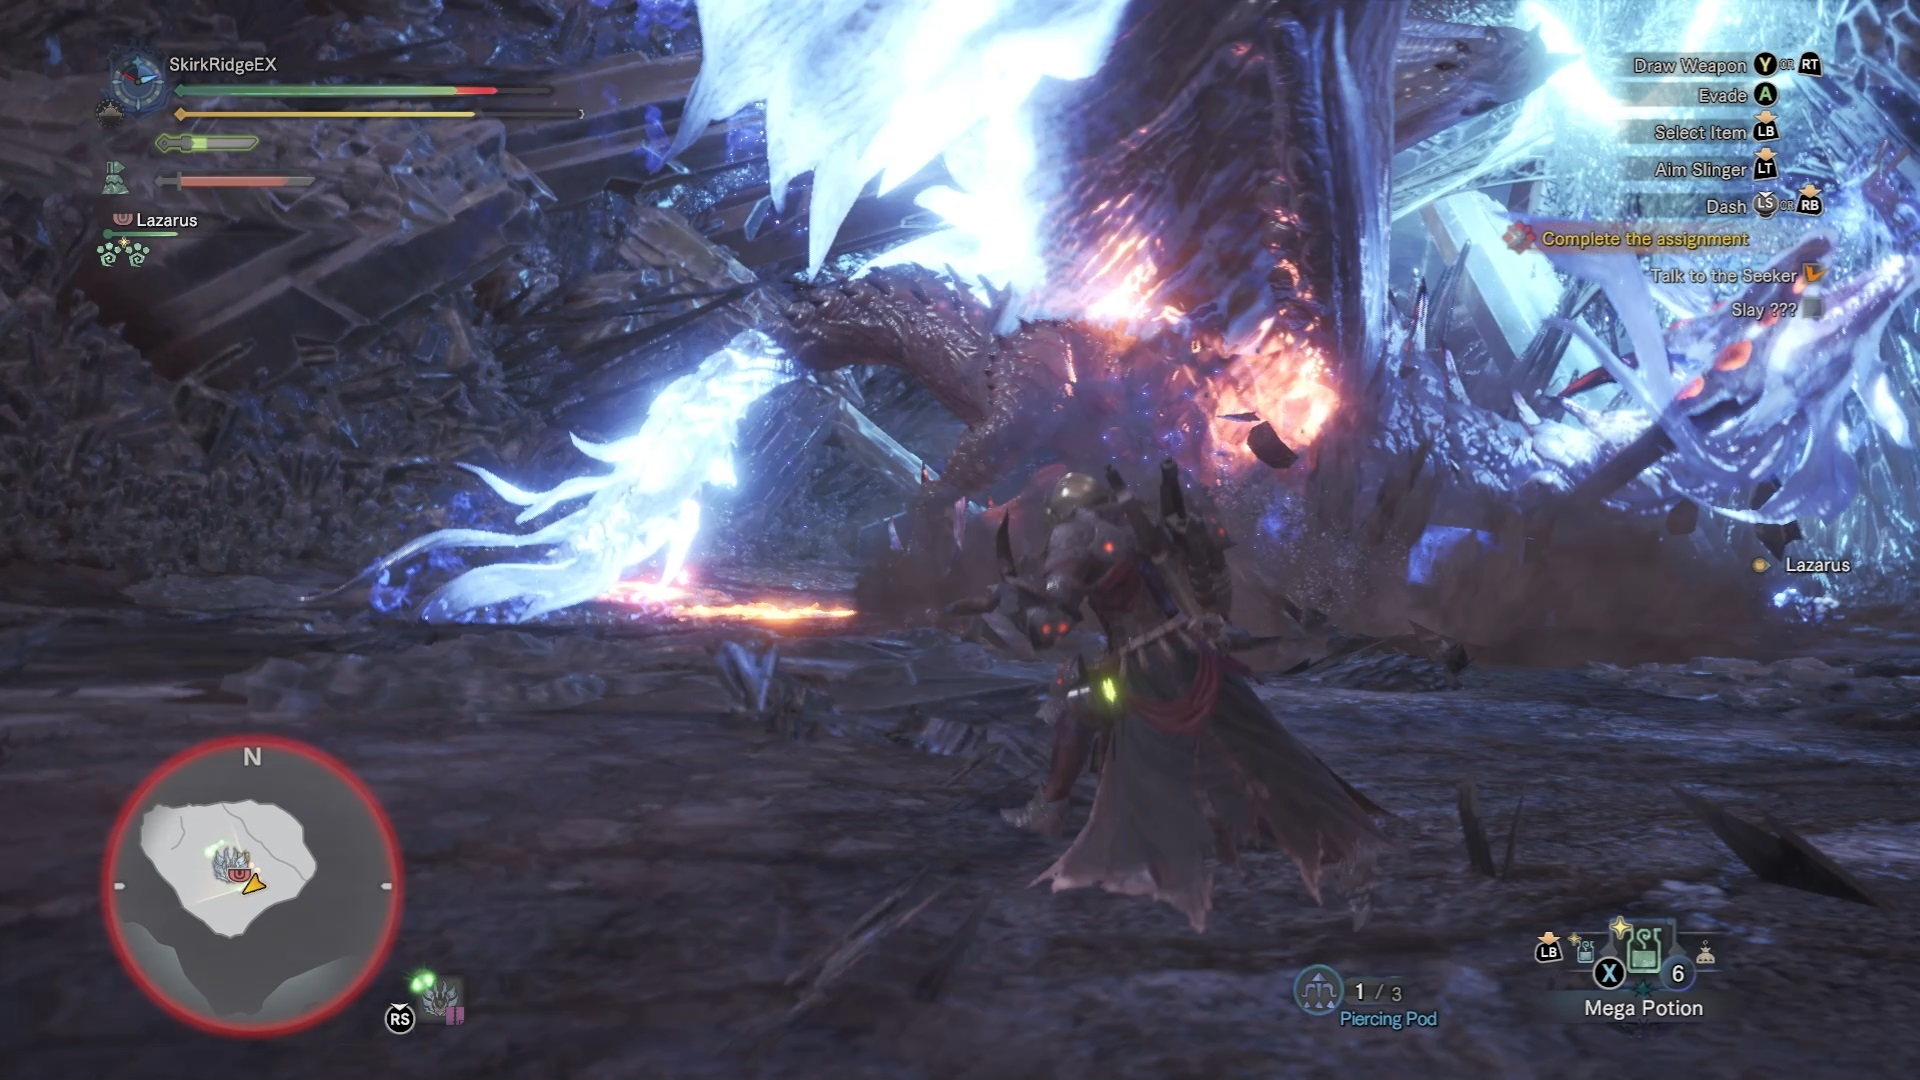 Xeno'jiiva plunges into the ground in its awakened state.